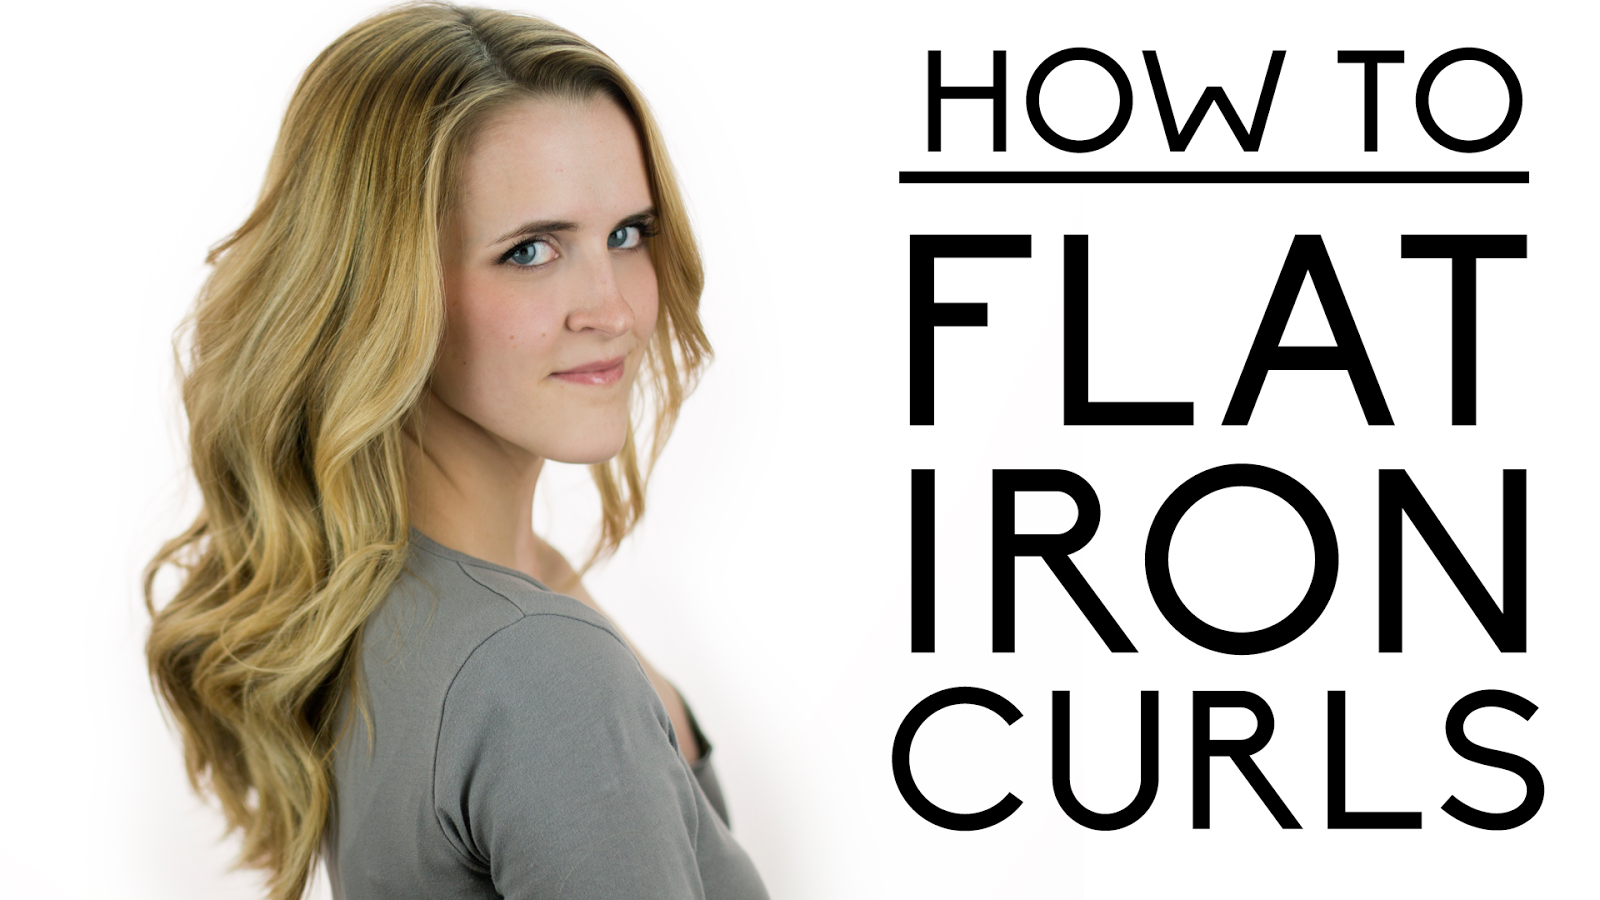 How to Make Curls With a Flat Iron Flat Iron Curls Instead